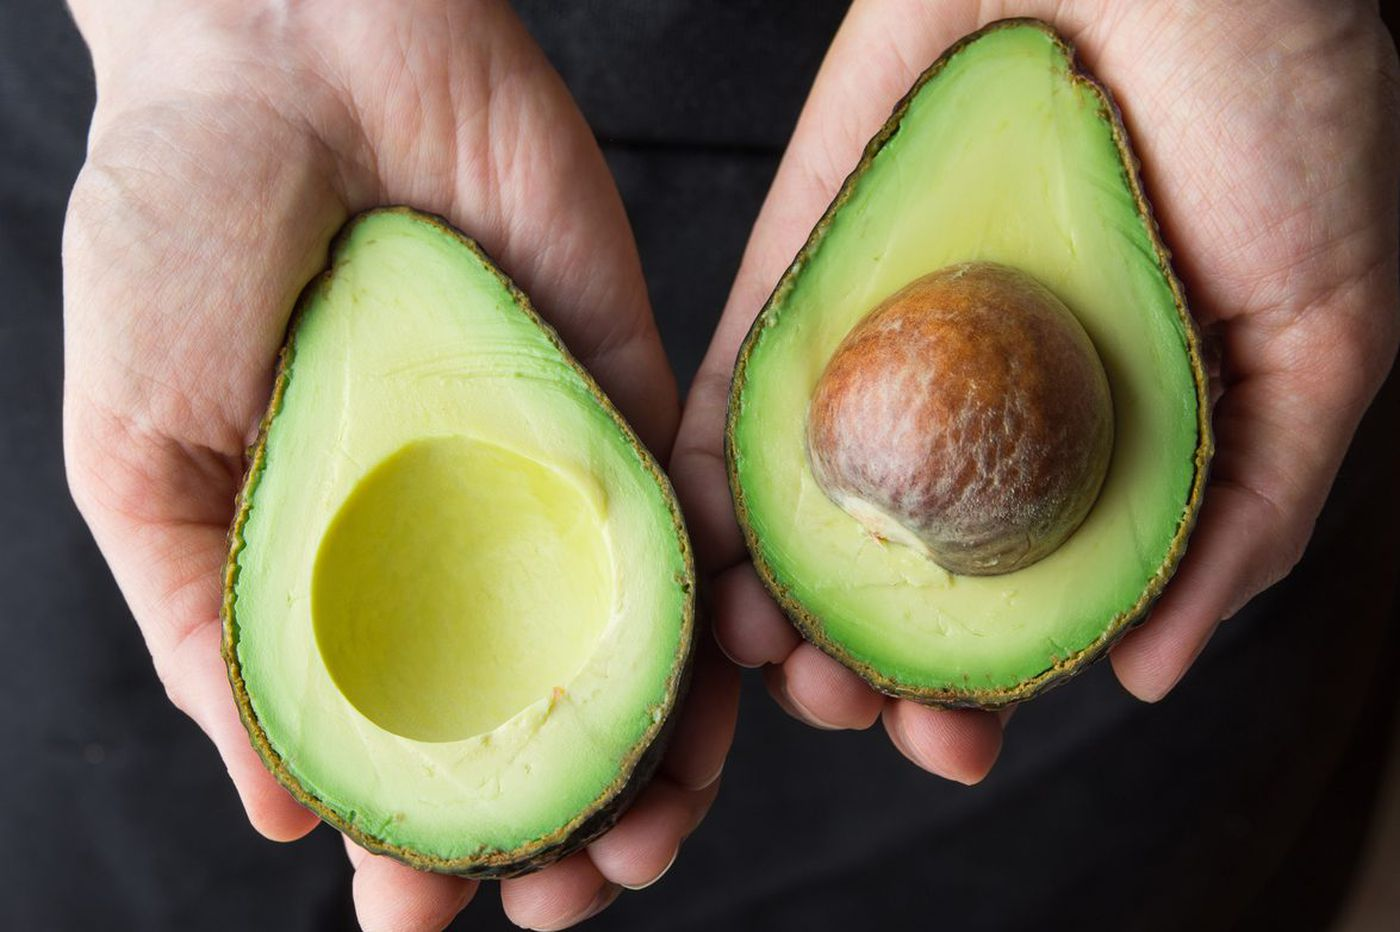 Should you eat the avocado pit?